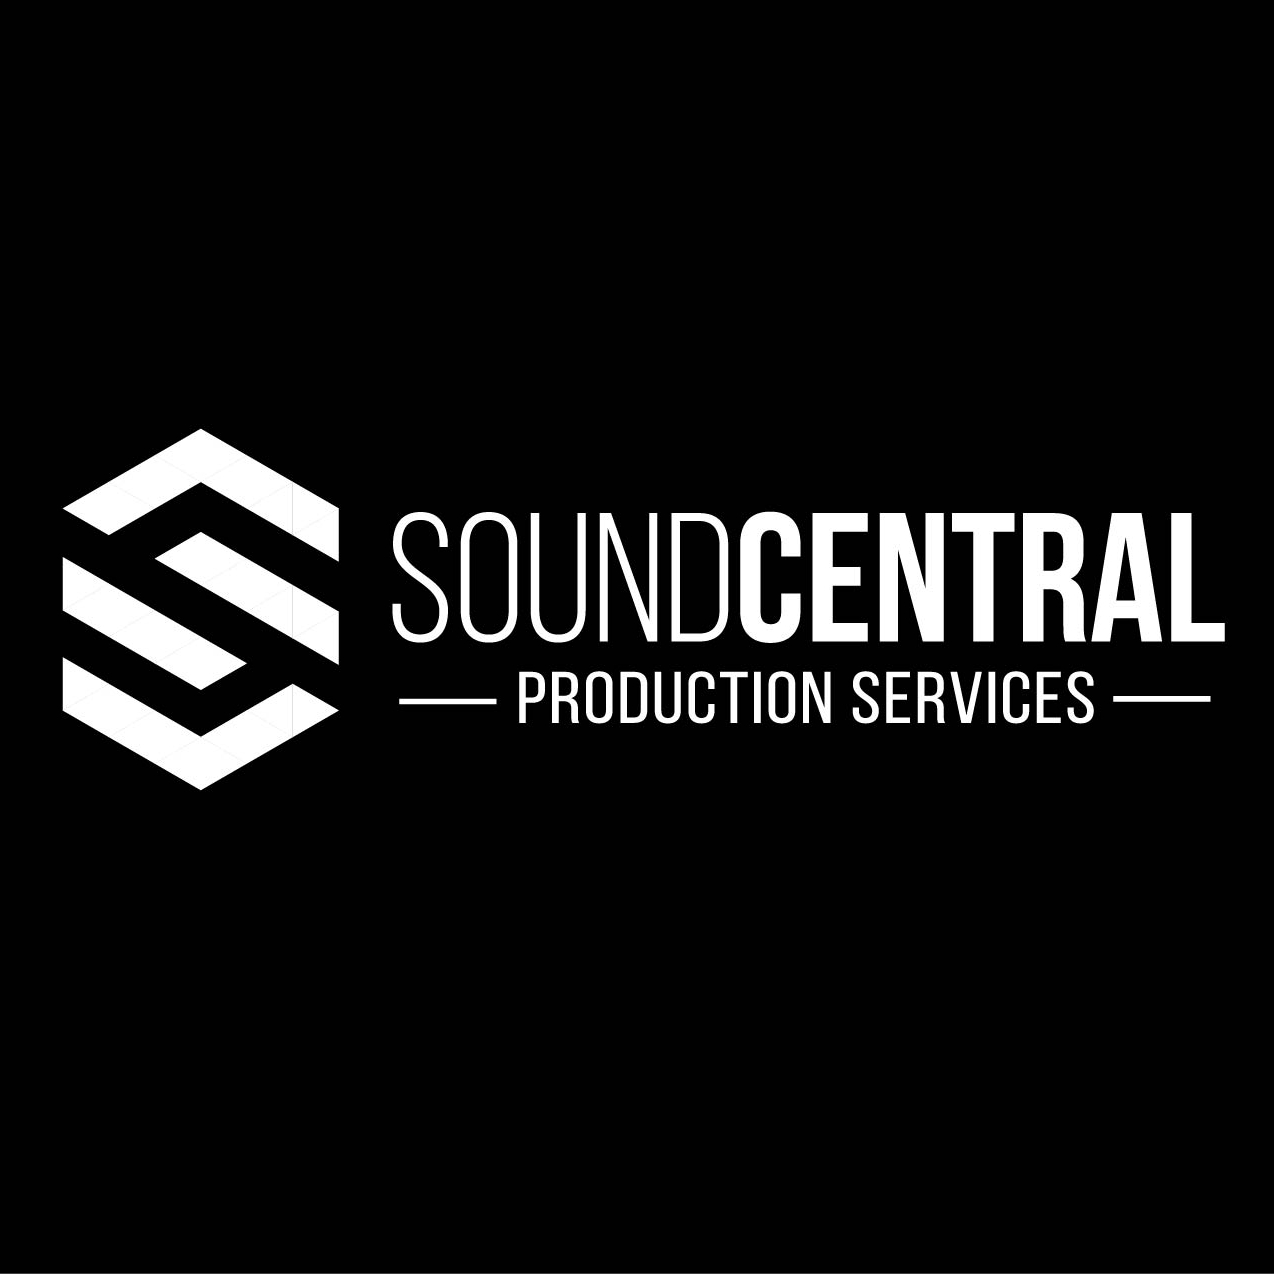 soundcentral_rgb on Black solid white.jpg